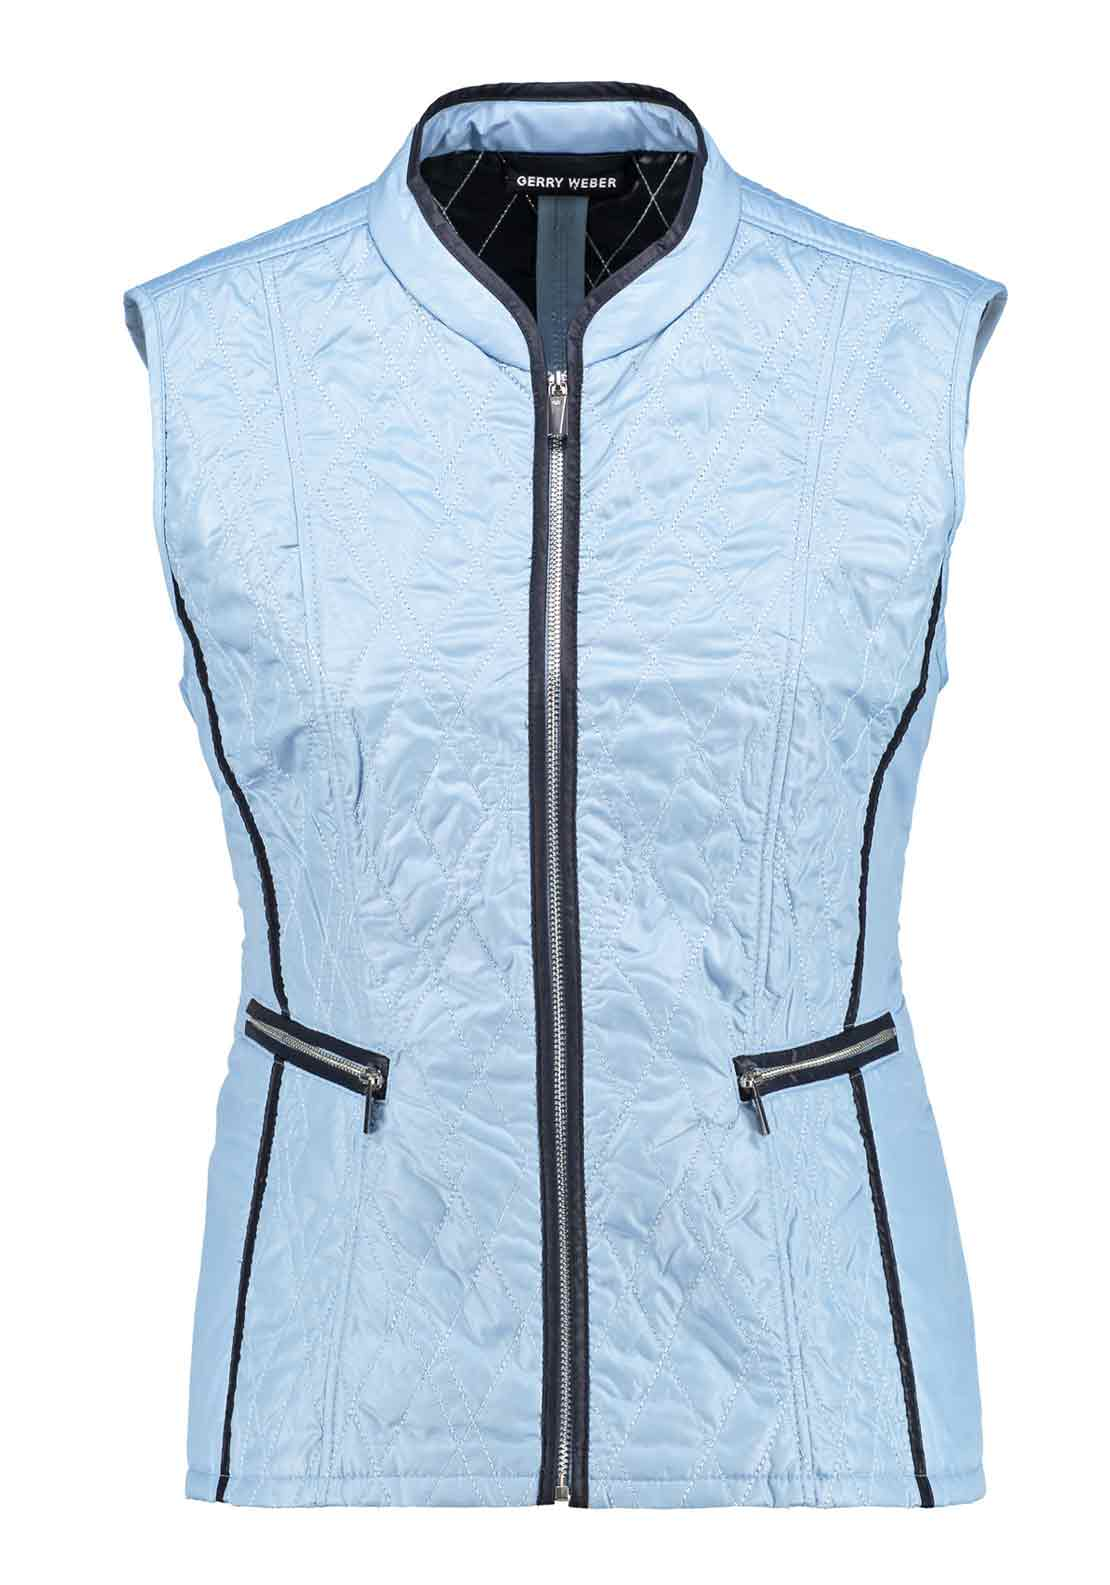 Gerry Weber Diamond Quilted Gilet, Pale Blue